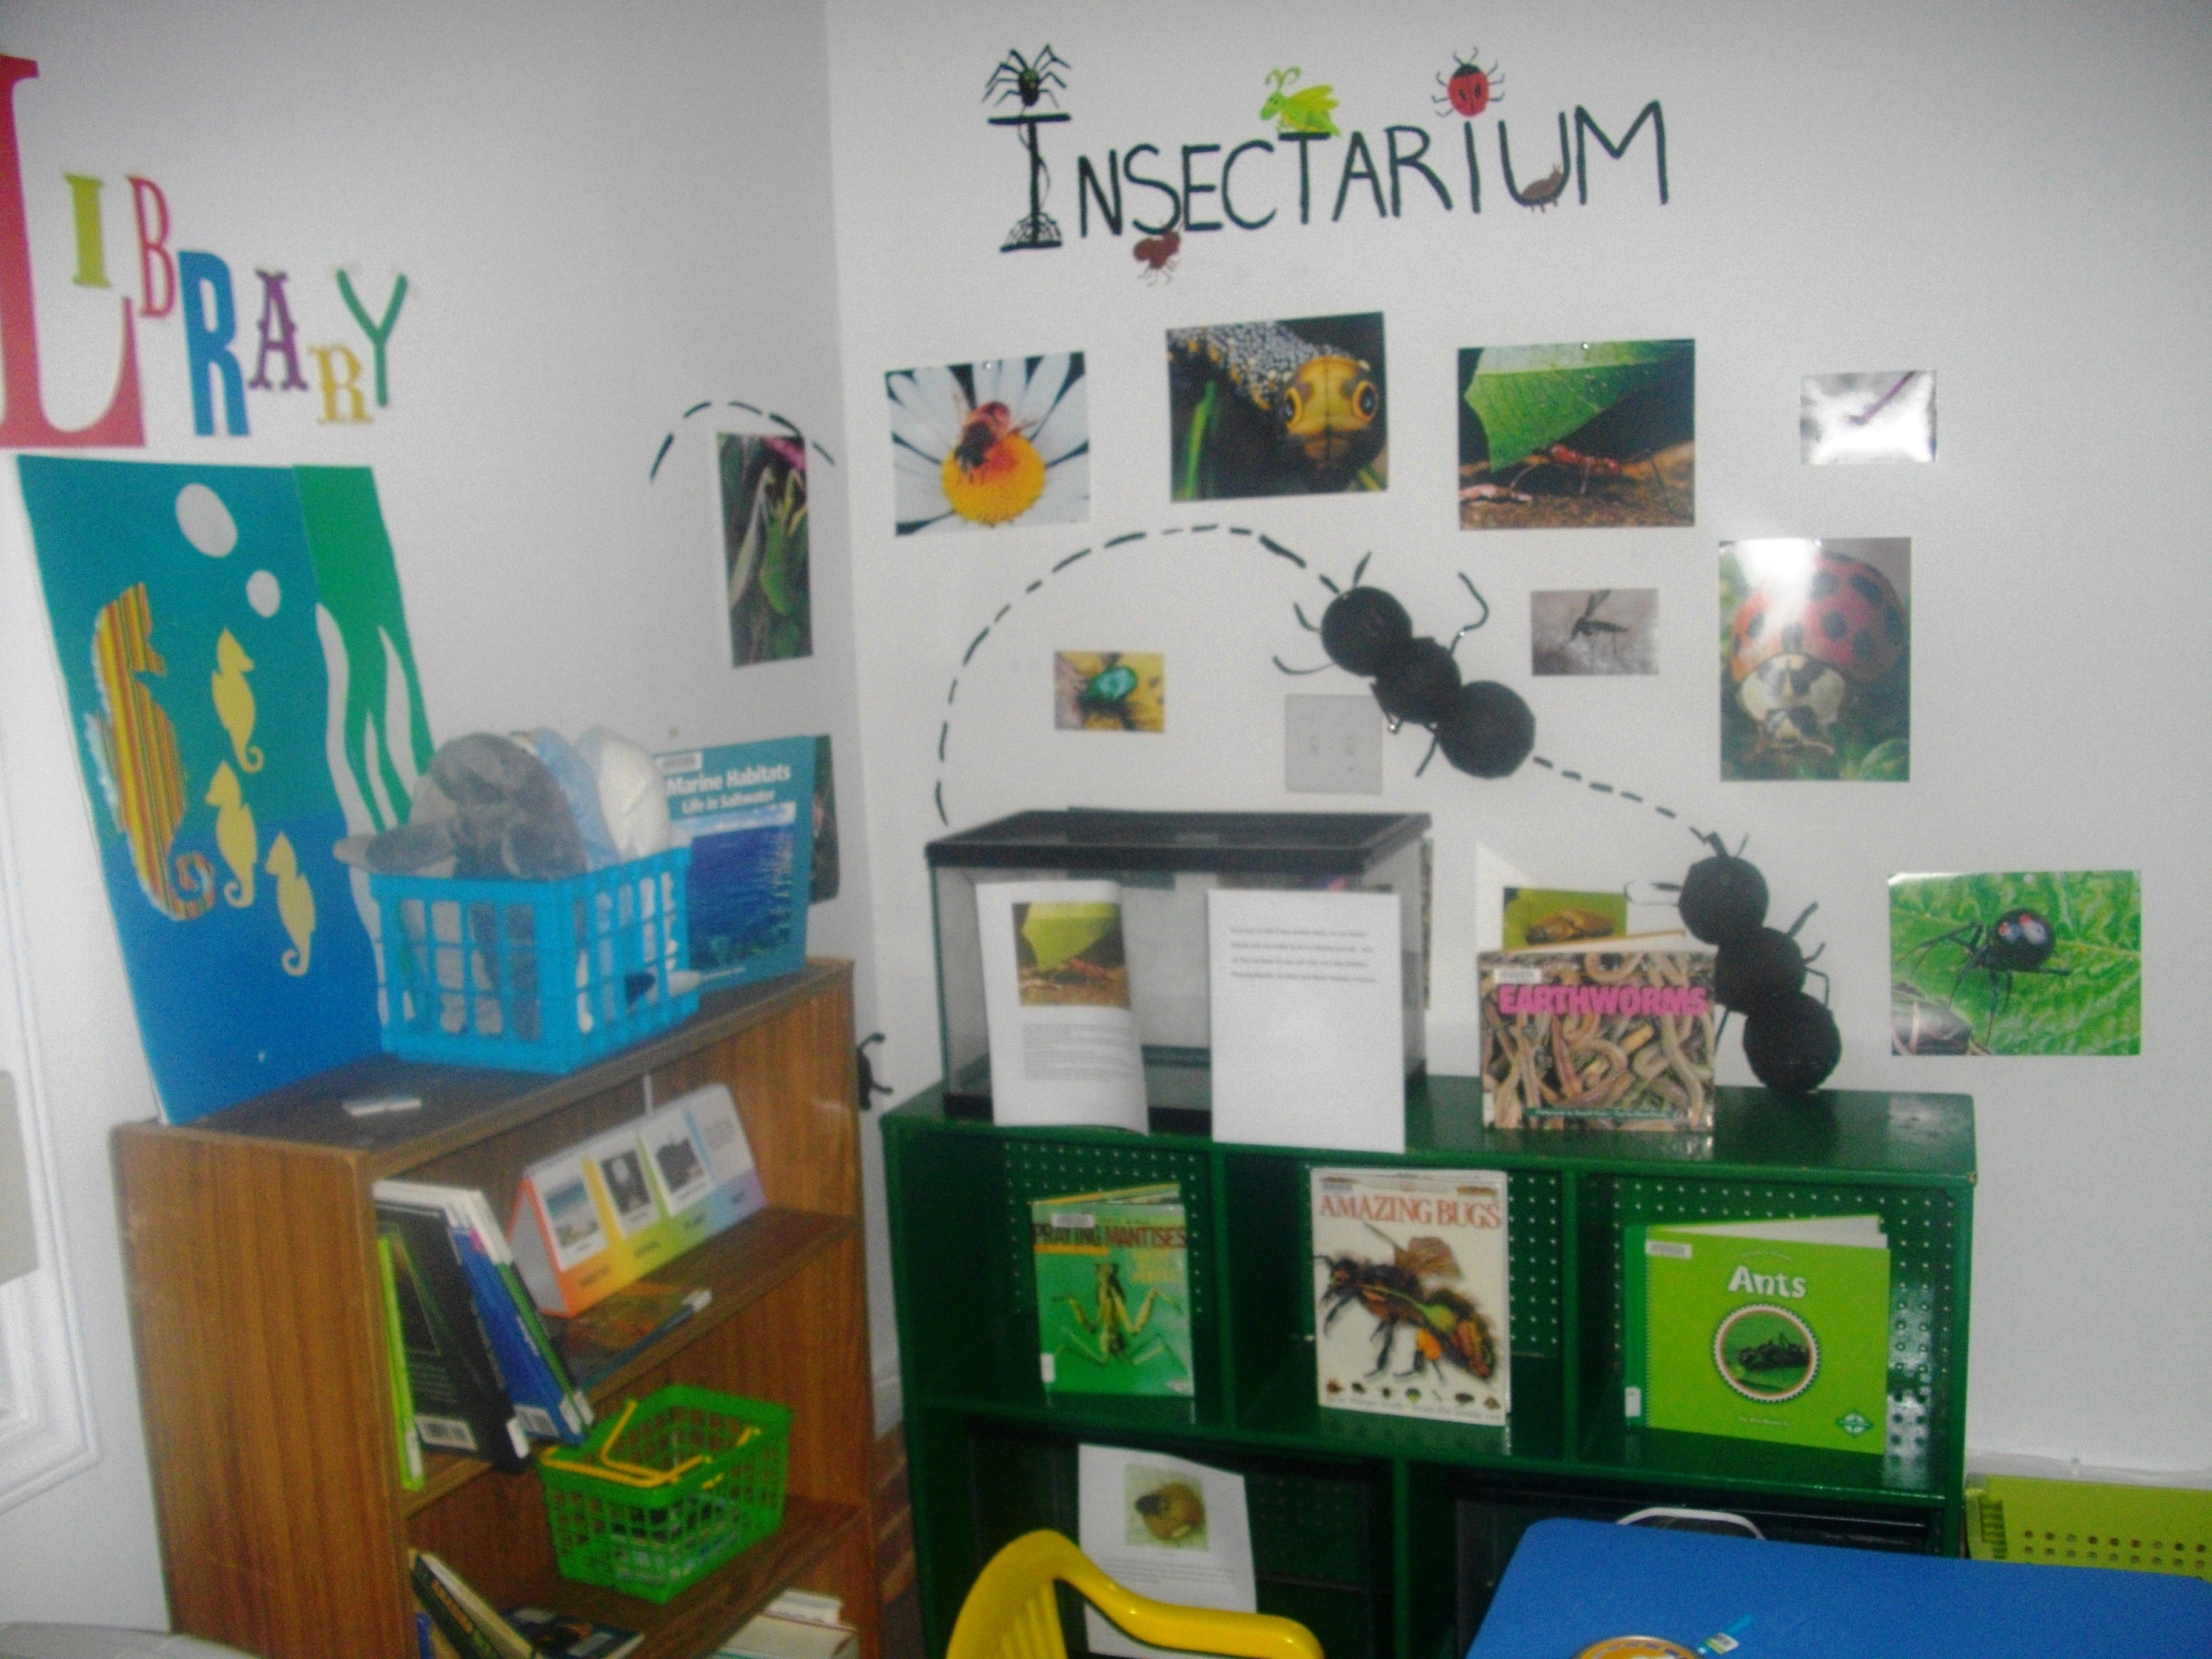 10 Pretty Dramatic Play Ideas For Toddlers insectarium for the insects i want stick insects giant cockroaches 2021